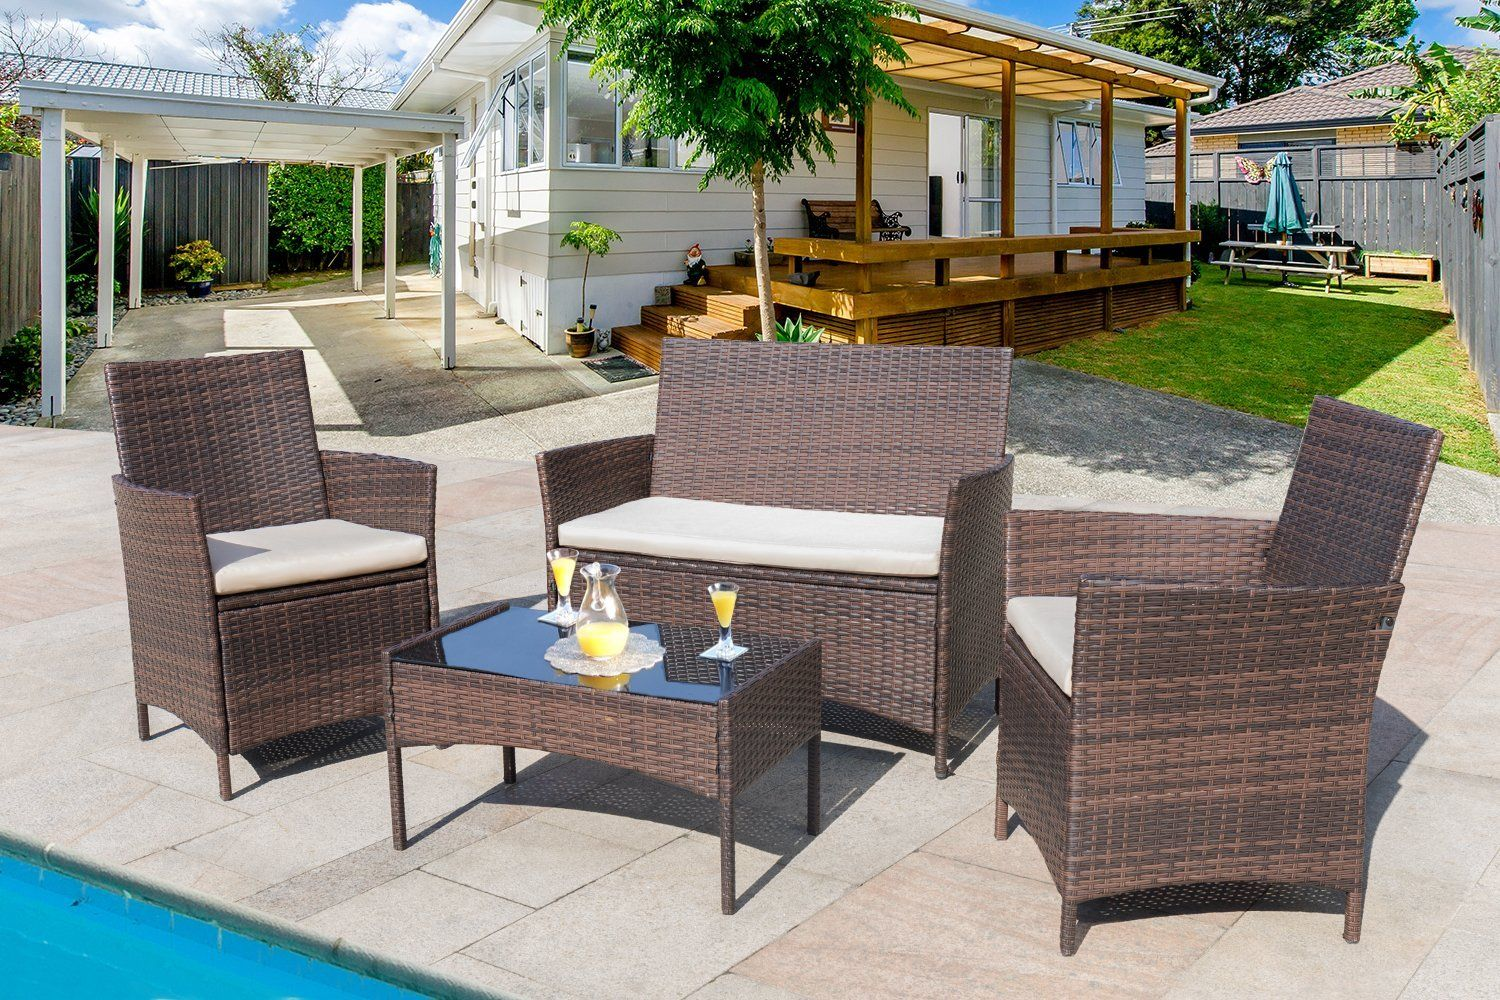 Stupendous Amazon Com Homall 4 Pieces Outdoor Patio Furniture Sets Home Remodeling Inspirations Gresiscottssportslandcom